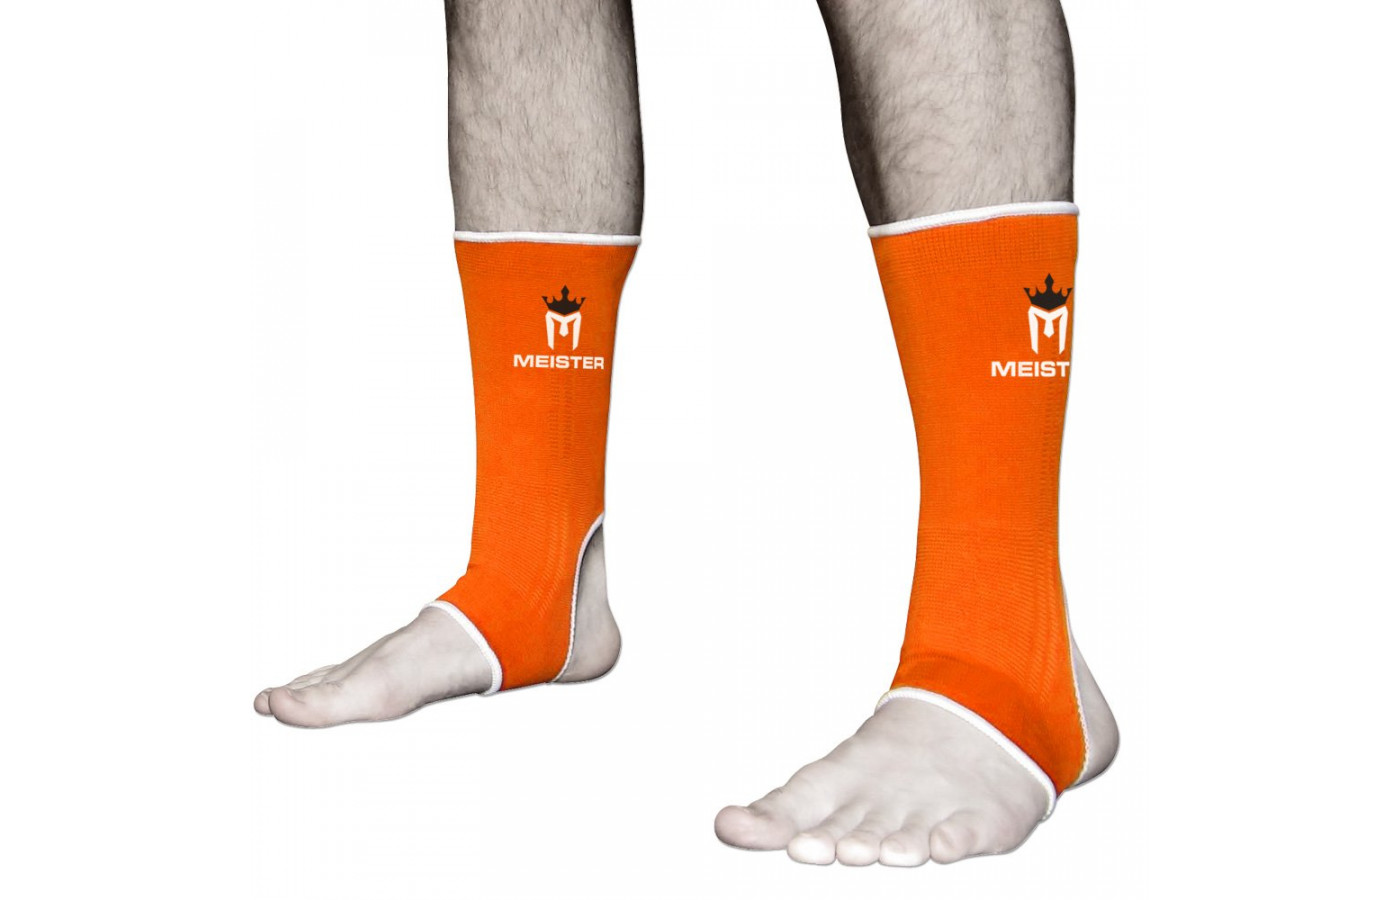 meister ankle supports orange